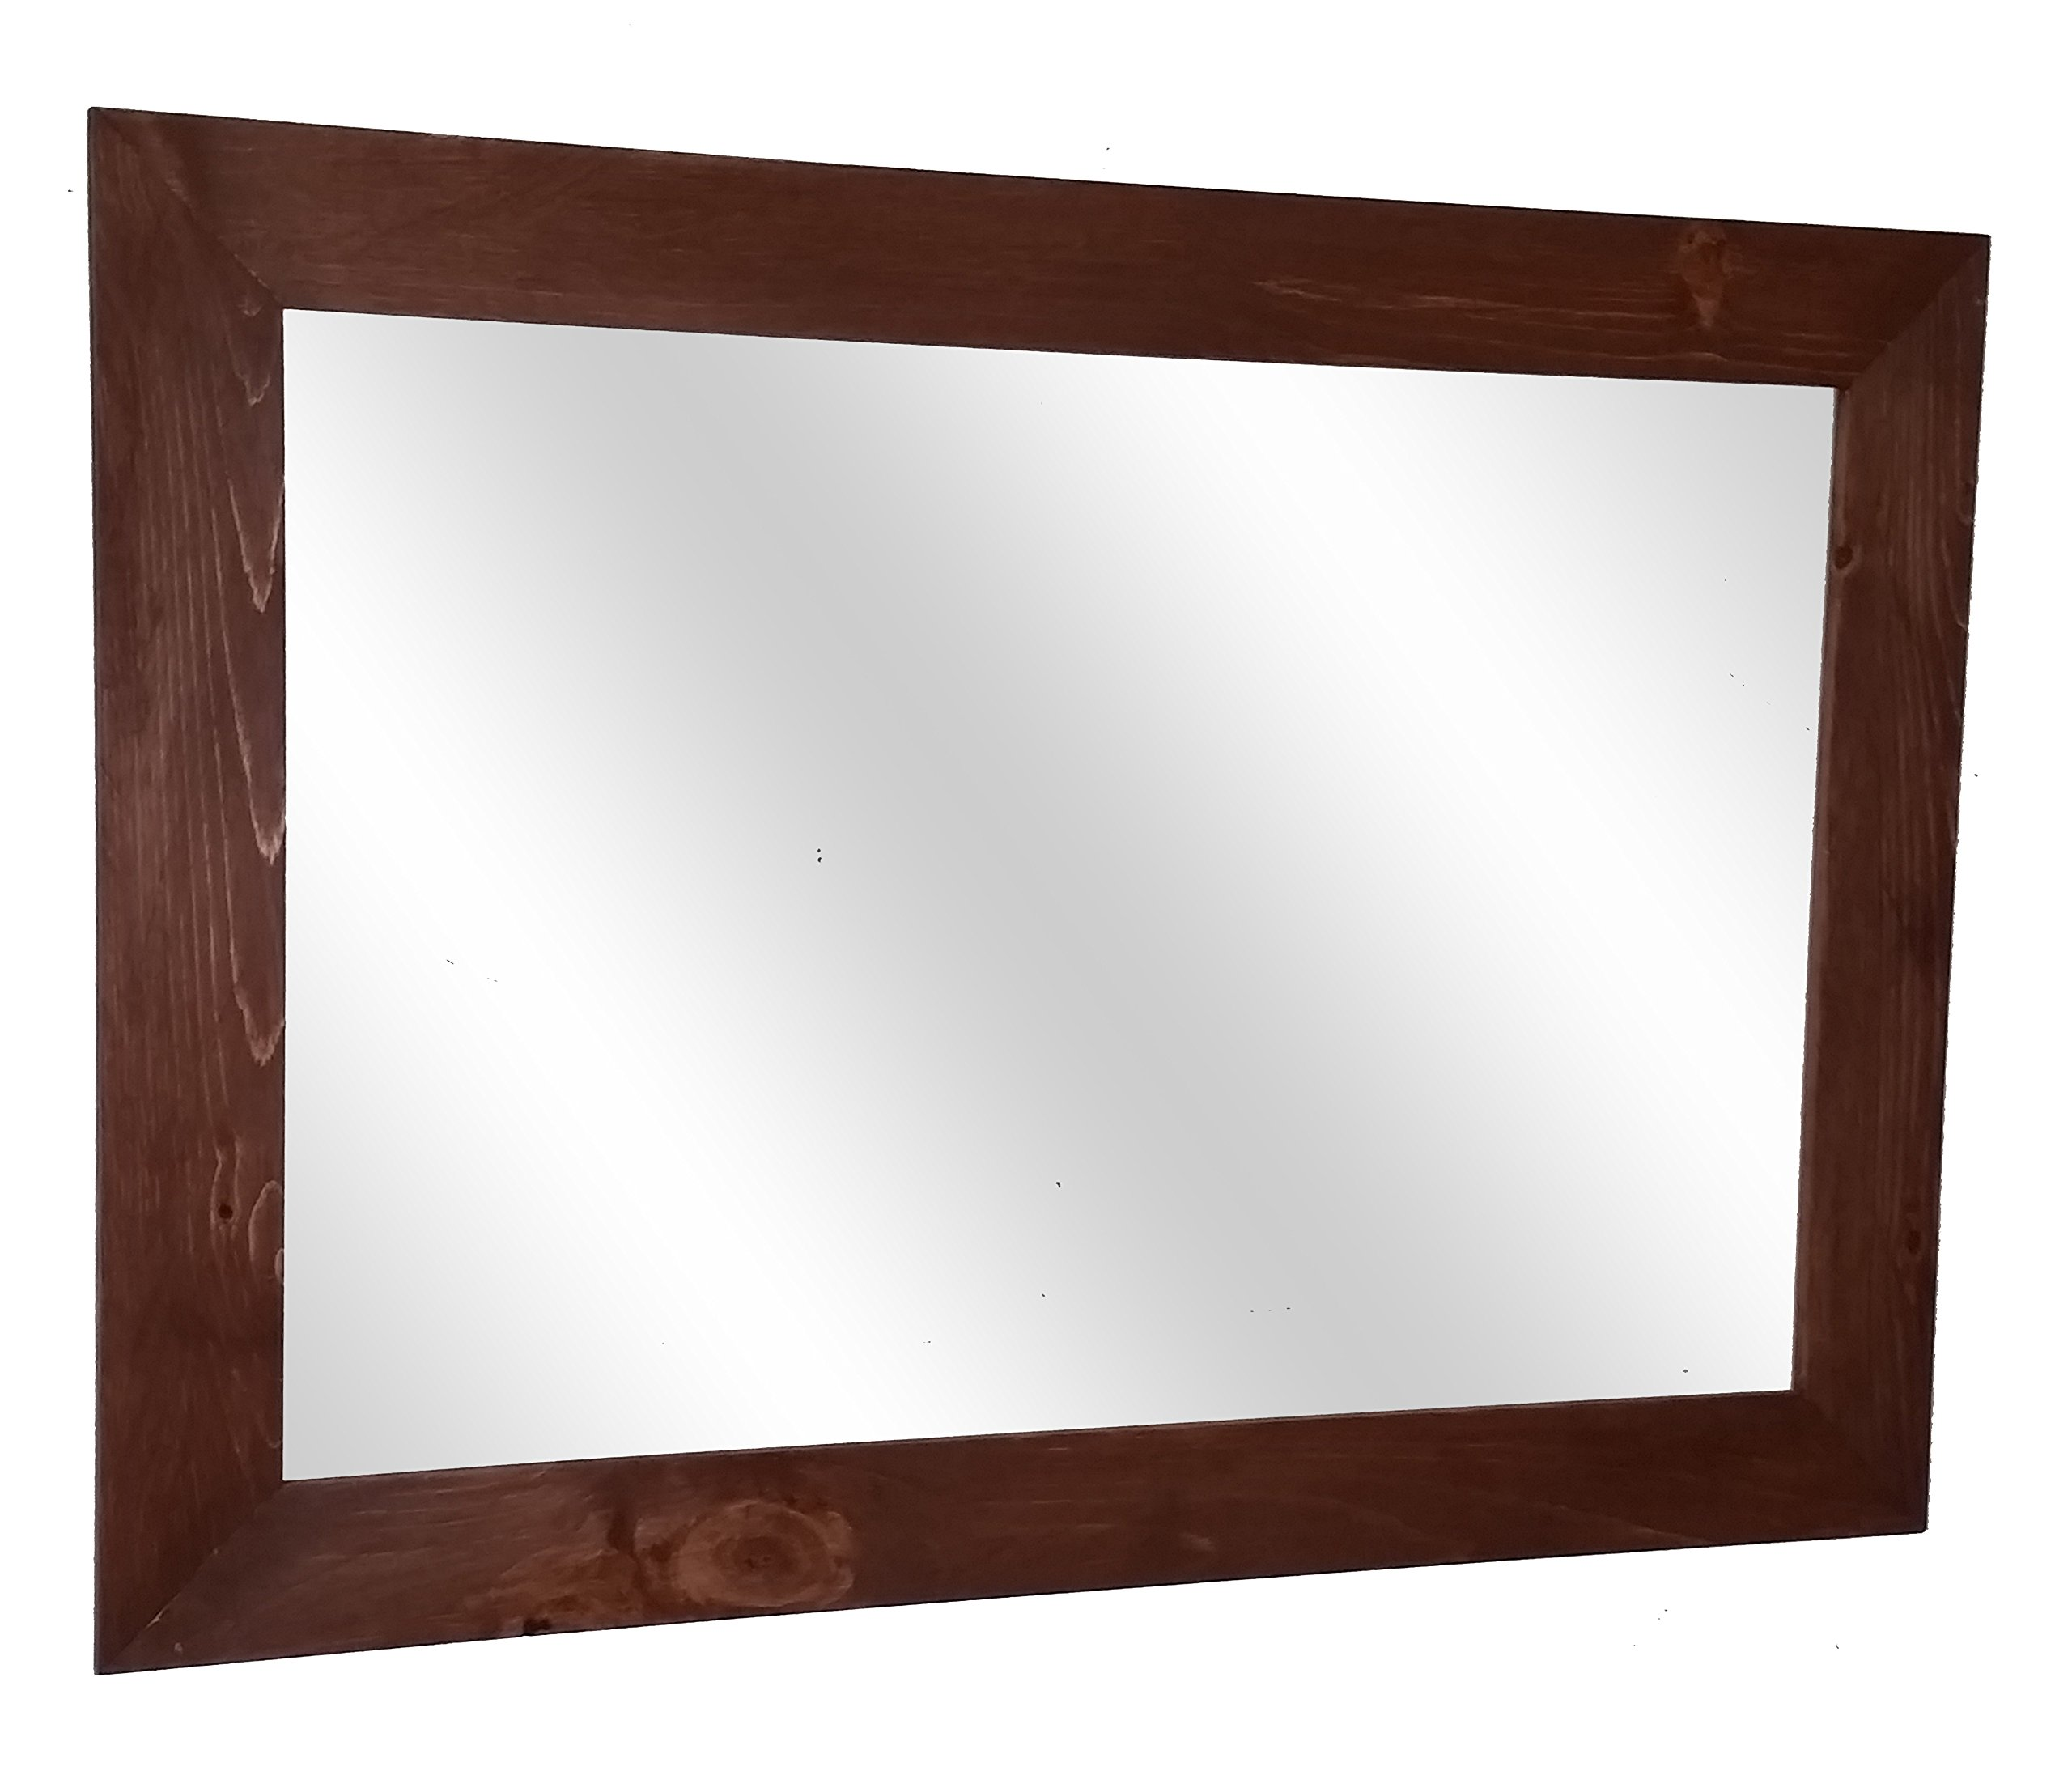 Shiplap Mirror 42 x 30 Horizontal English Chestnut Stain Reclaimed Wood Mirror - Large Wall Mirror - Rustic Modern Home - Home Decor - Mirror - Housewares - Woodwork - Frame by Renewed Decor